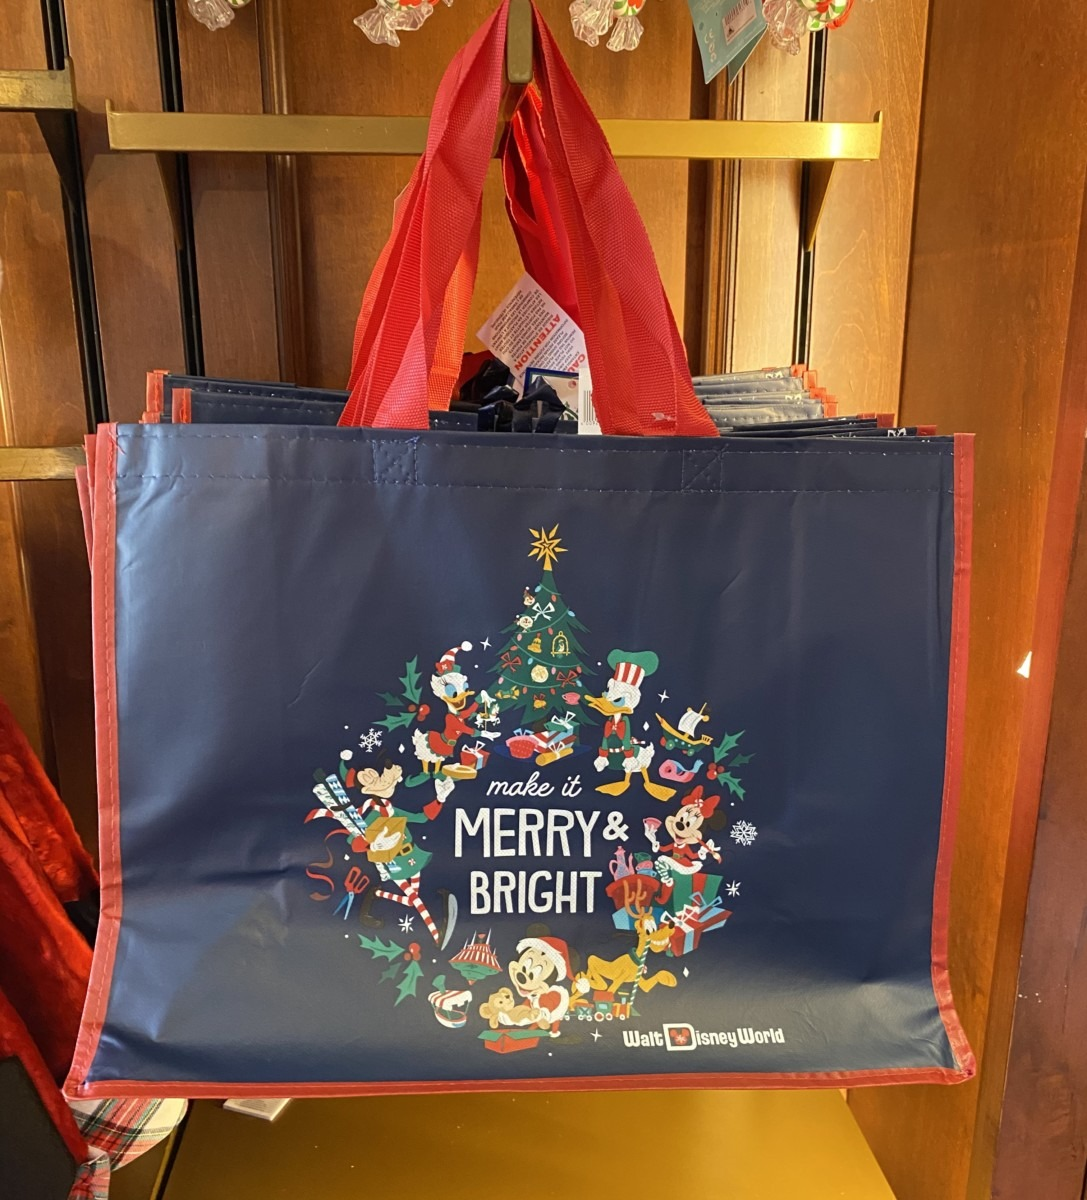 New Holiday Merchandise at Walt Disney World! 2